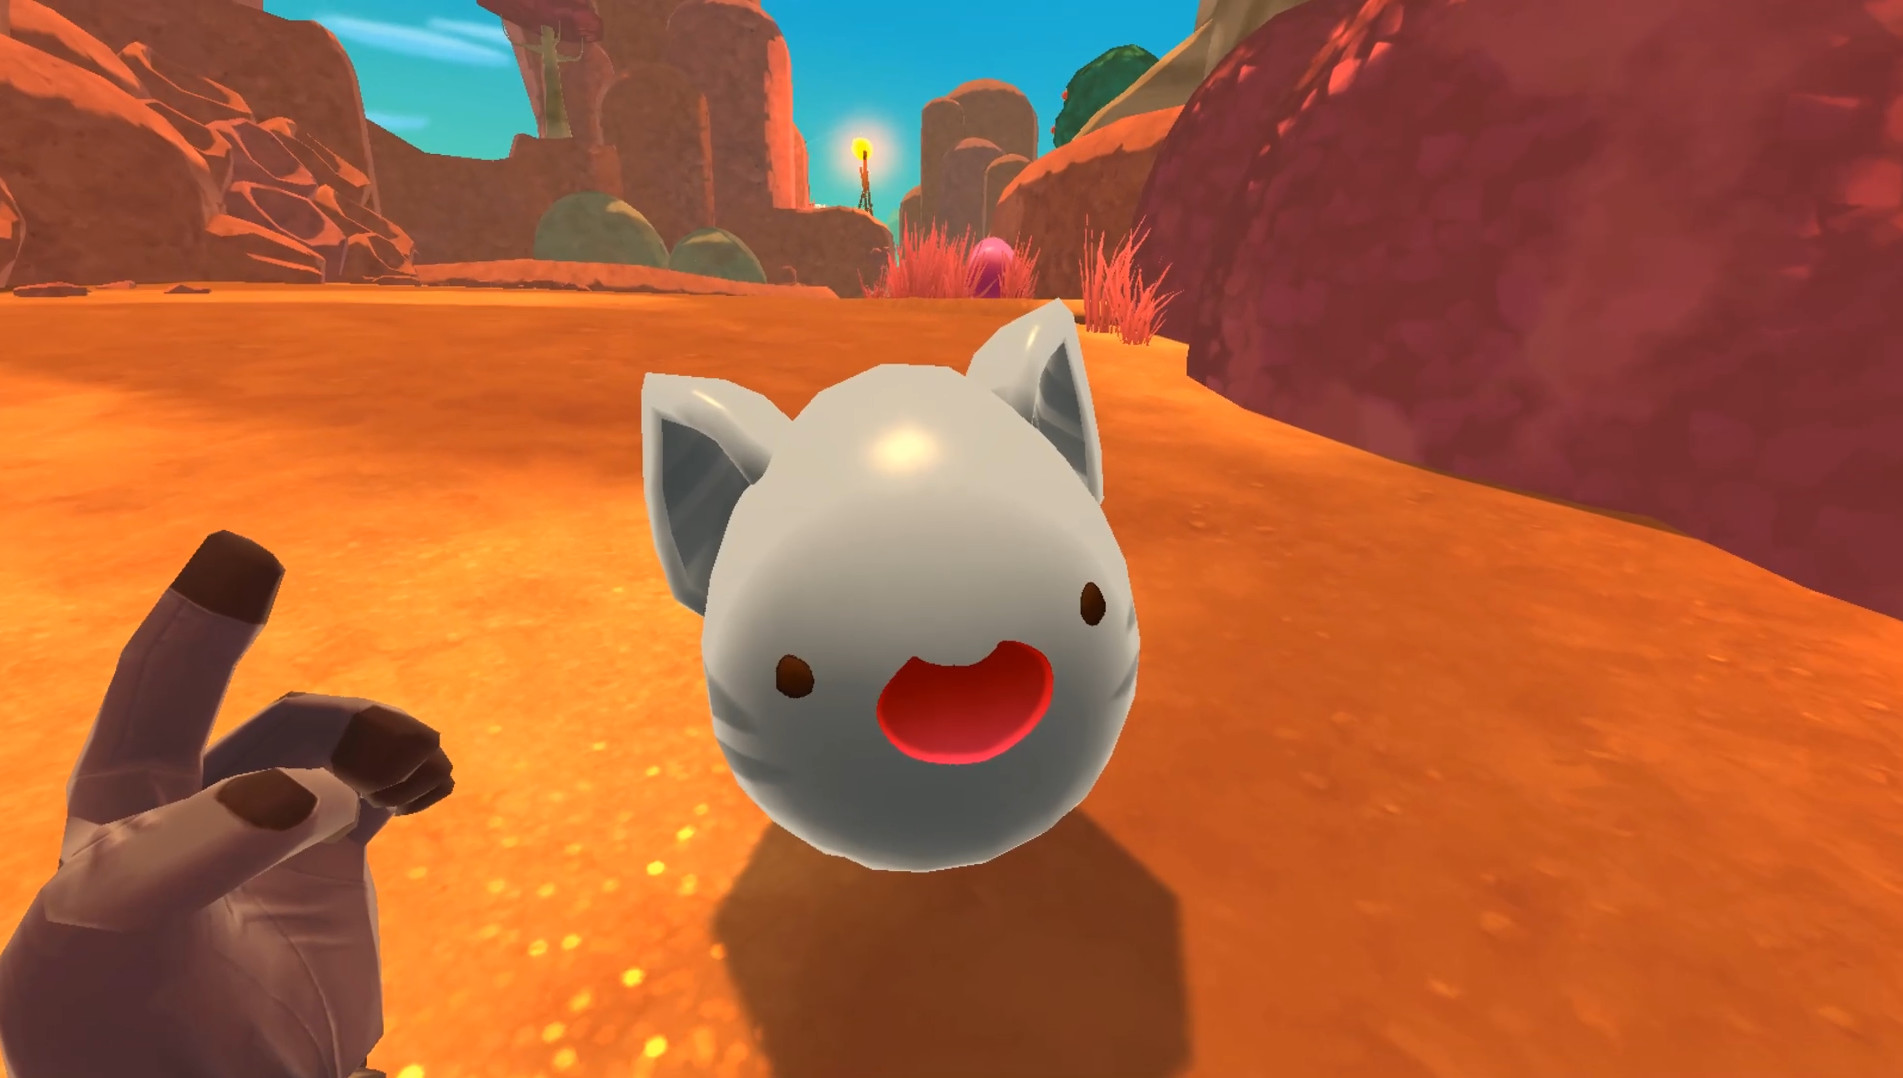 Slime_Rancher_VR_Playground-download